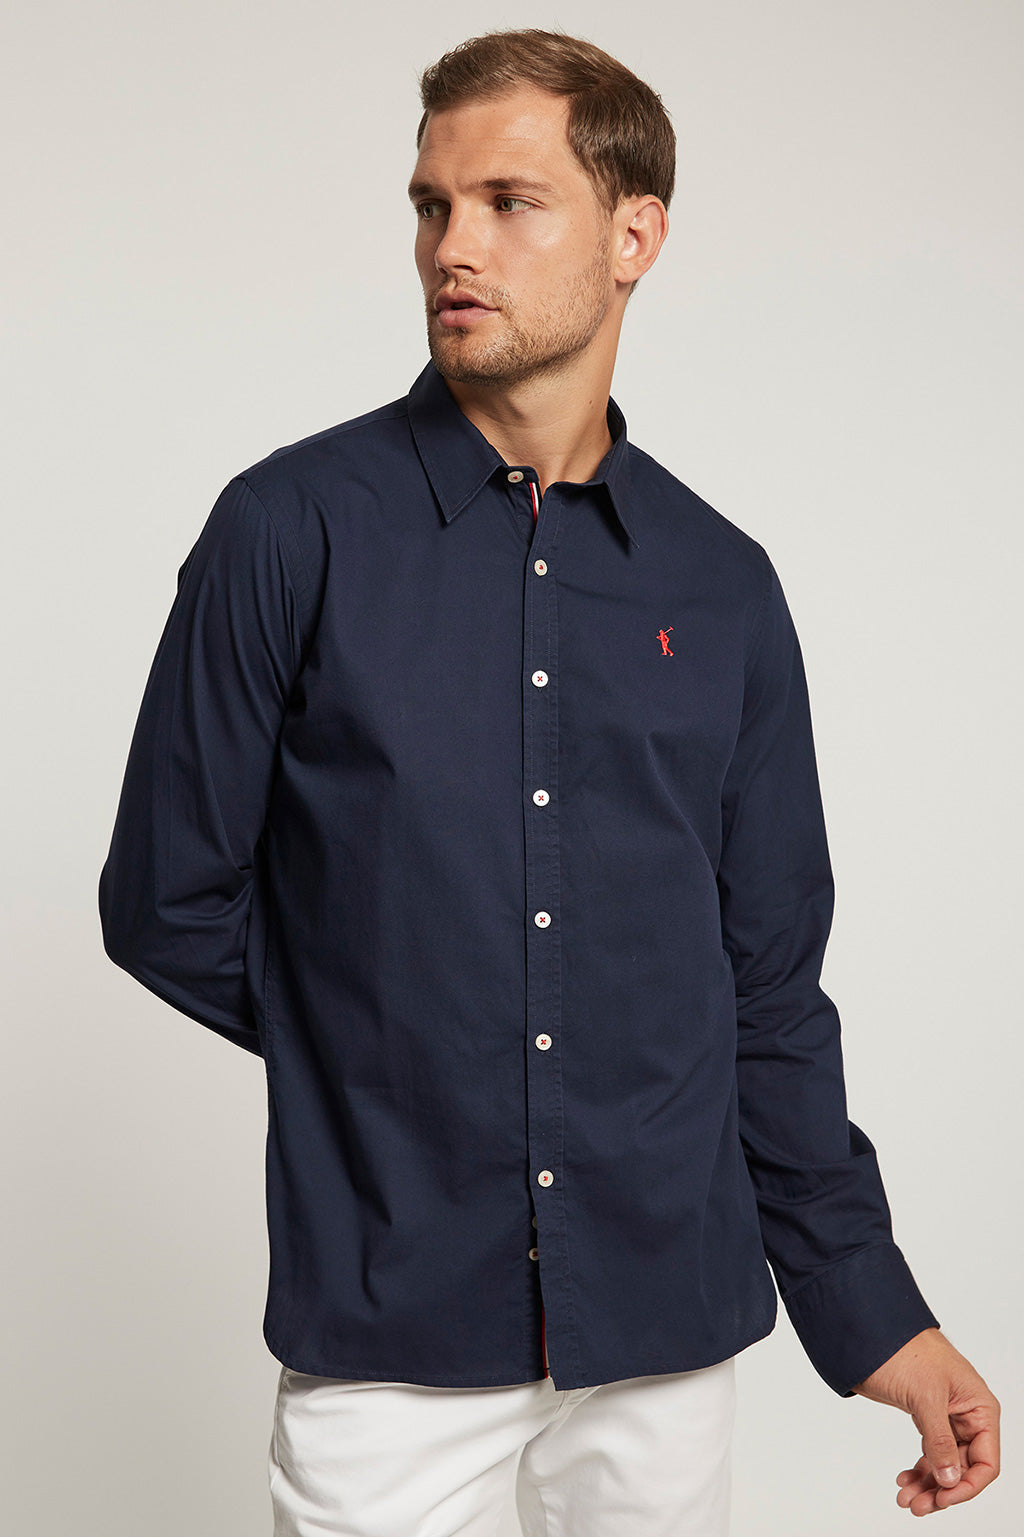 Navy blue slim fit shirt with embroidered logo